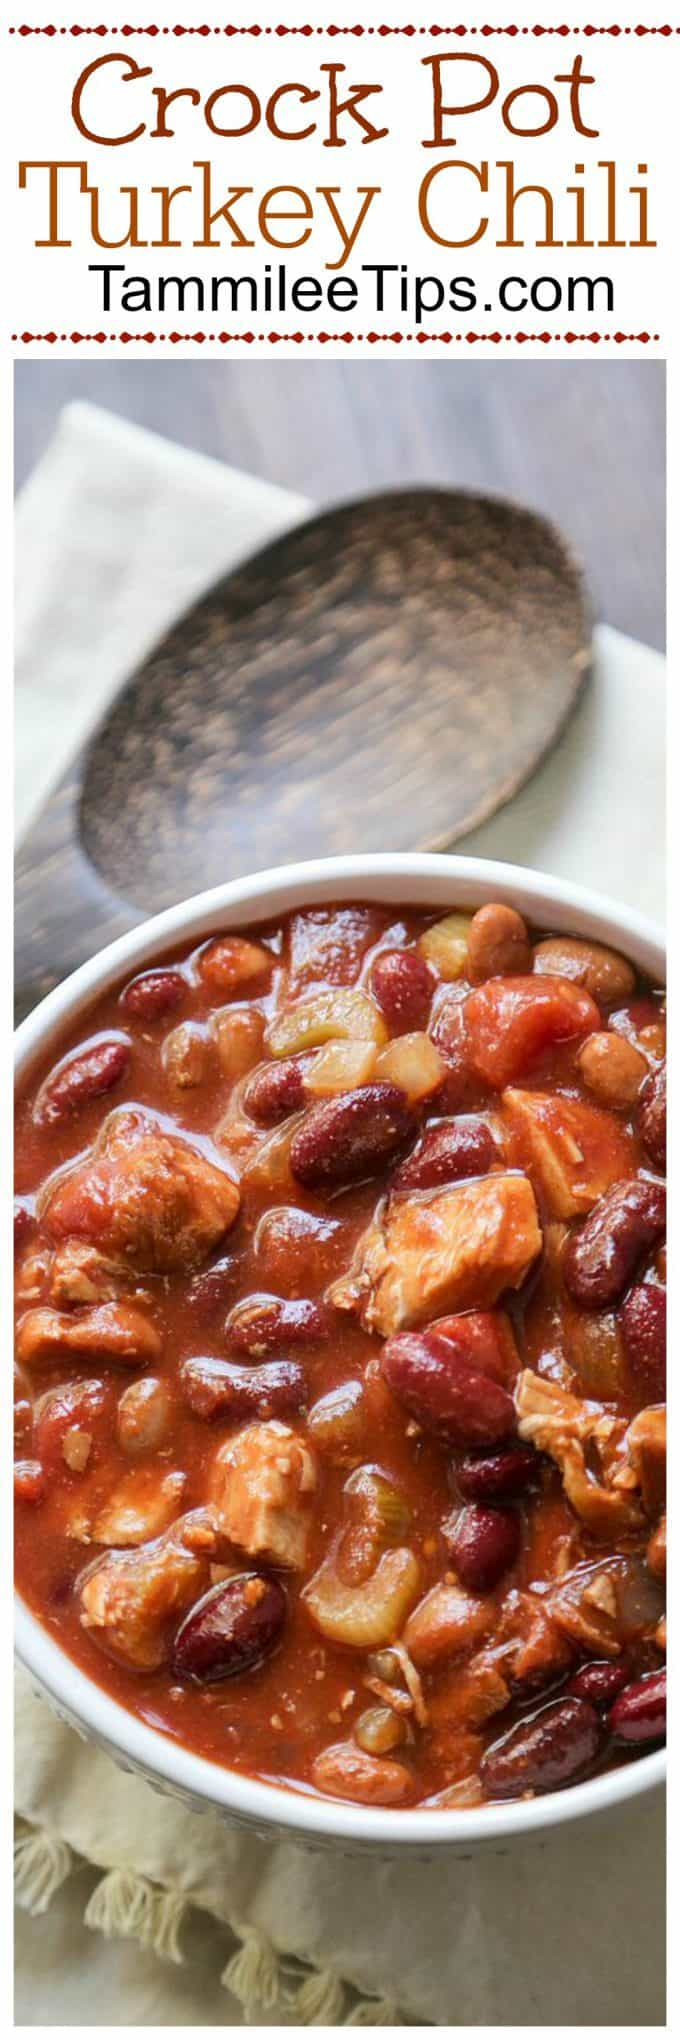 Easy Healthy Slow Cooker CrockPot Turkey Chili Recipe the family will love. This crock pot recipe is great for leftovers, winter comfort food,  and so easy to make!